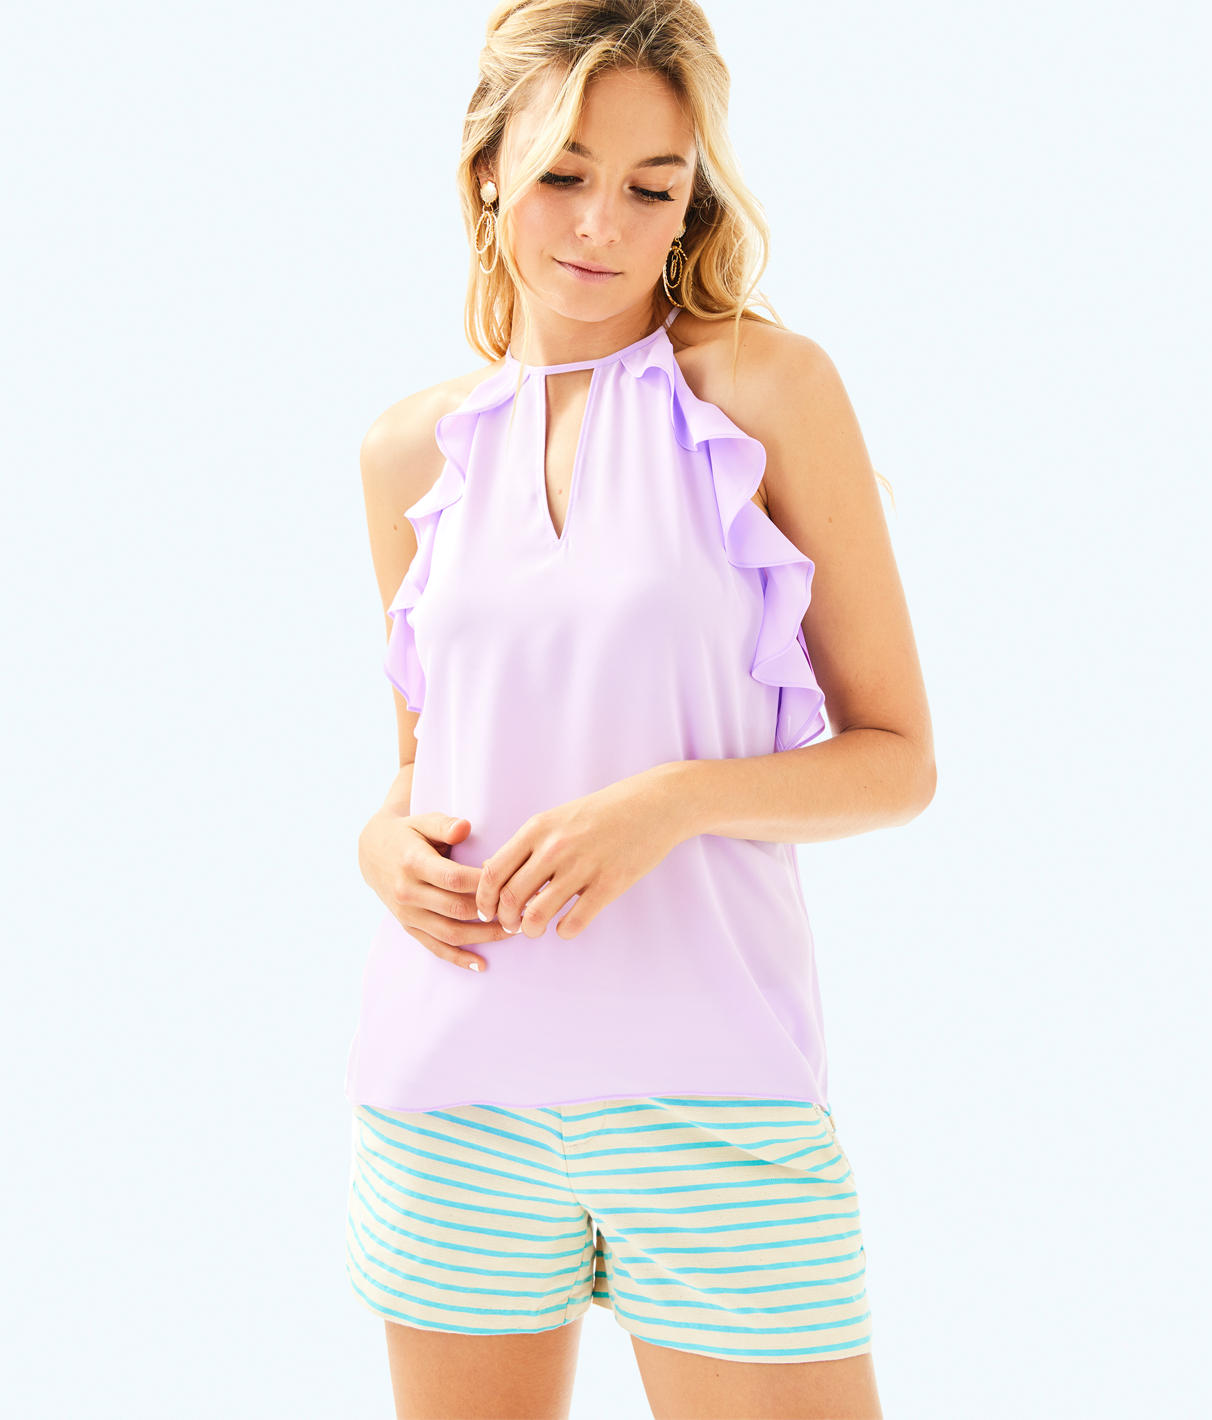 Lilly Pulitzer Lilly Pulitzer Padma Top